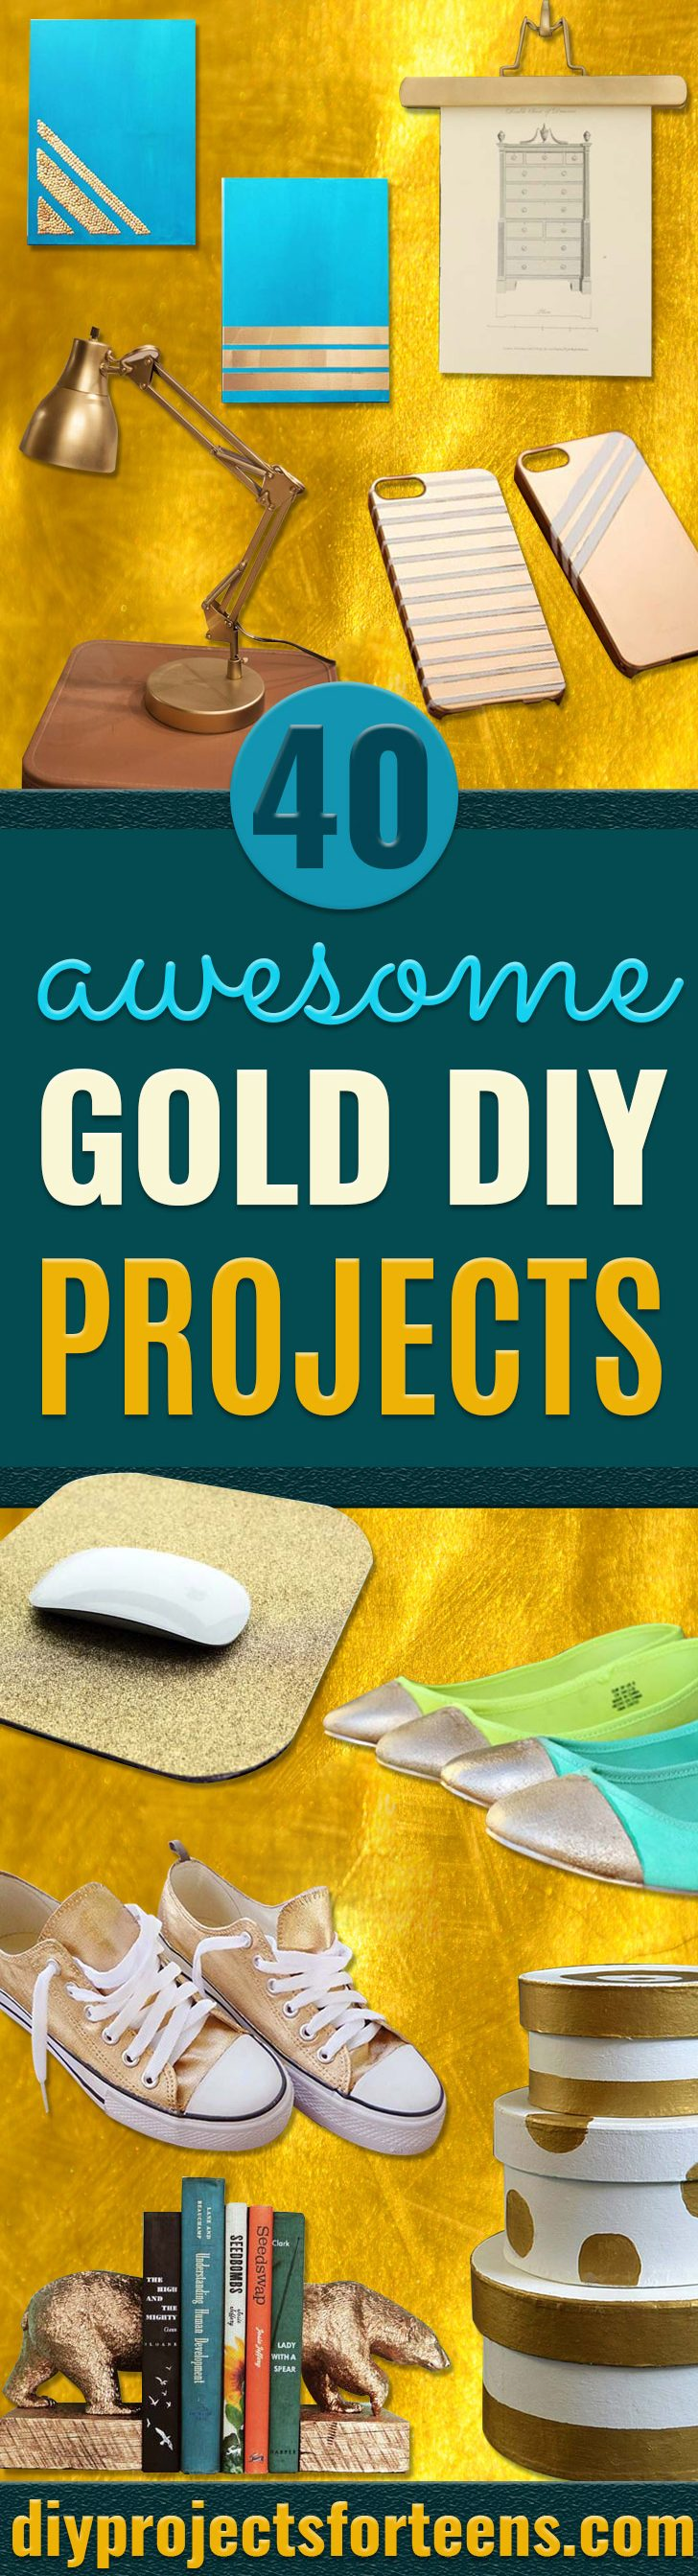 Gold DIY Projects and Crafts - Easy Room Decor, Wall Art and Accessories in Gold - Spray Paint, Painted Ideas, Creative and Cheap Home Decor - Projects and Crafts for Teens, Apartments, Adults and Teenagers